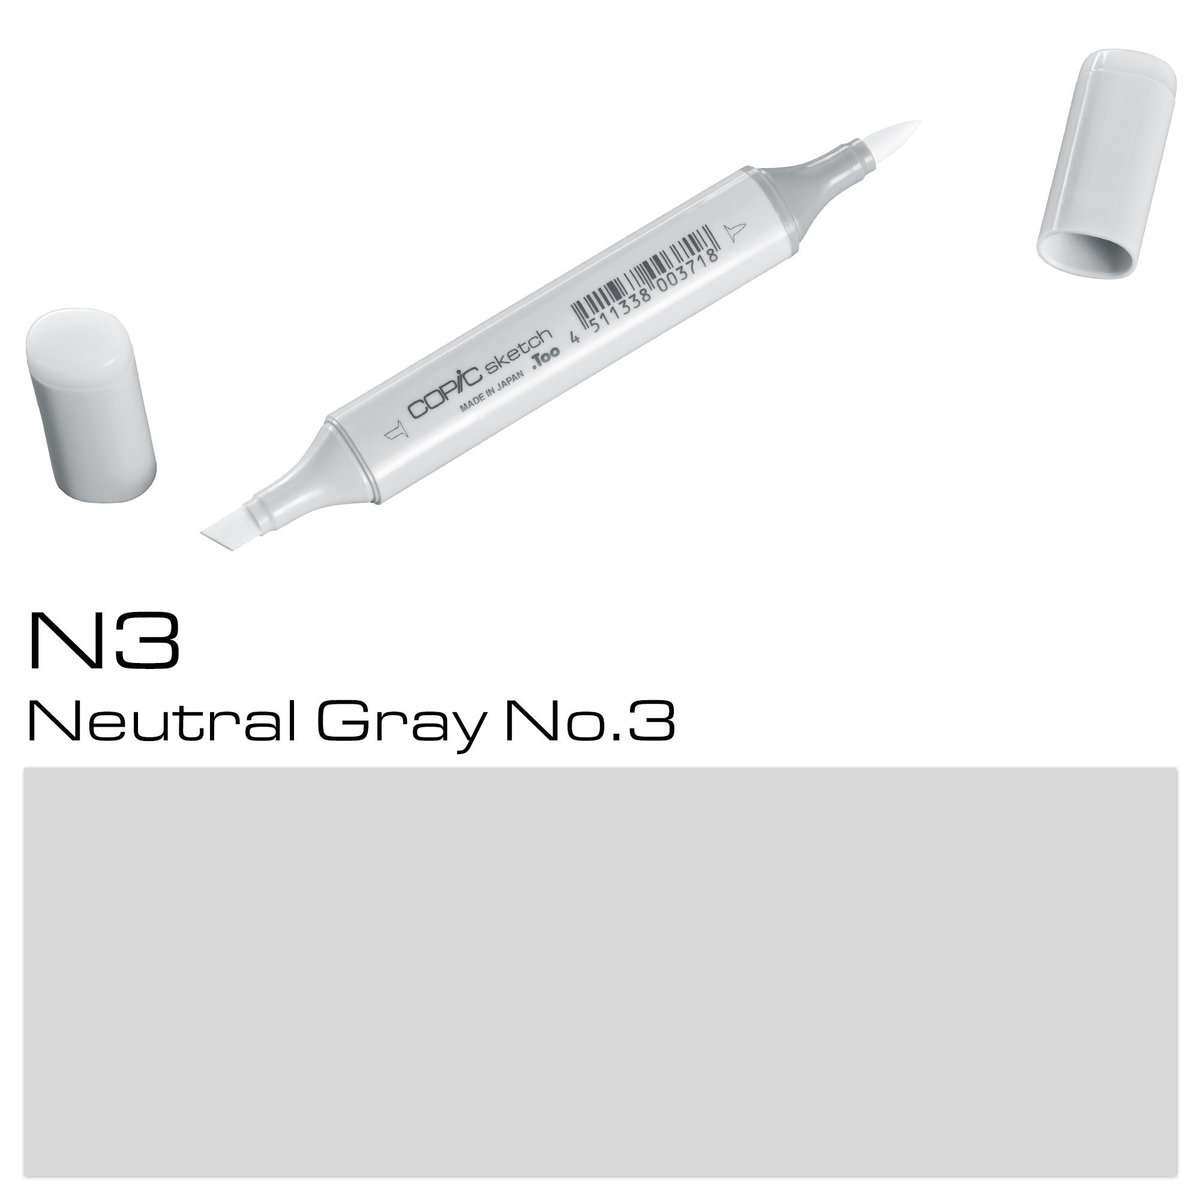 Copic Sketch N 3 neutral gray